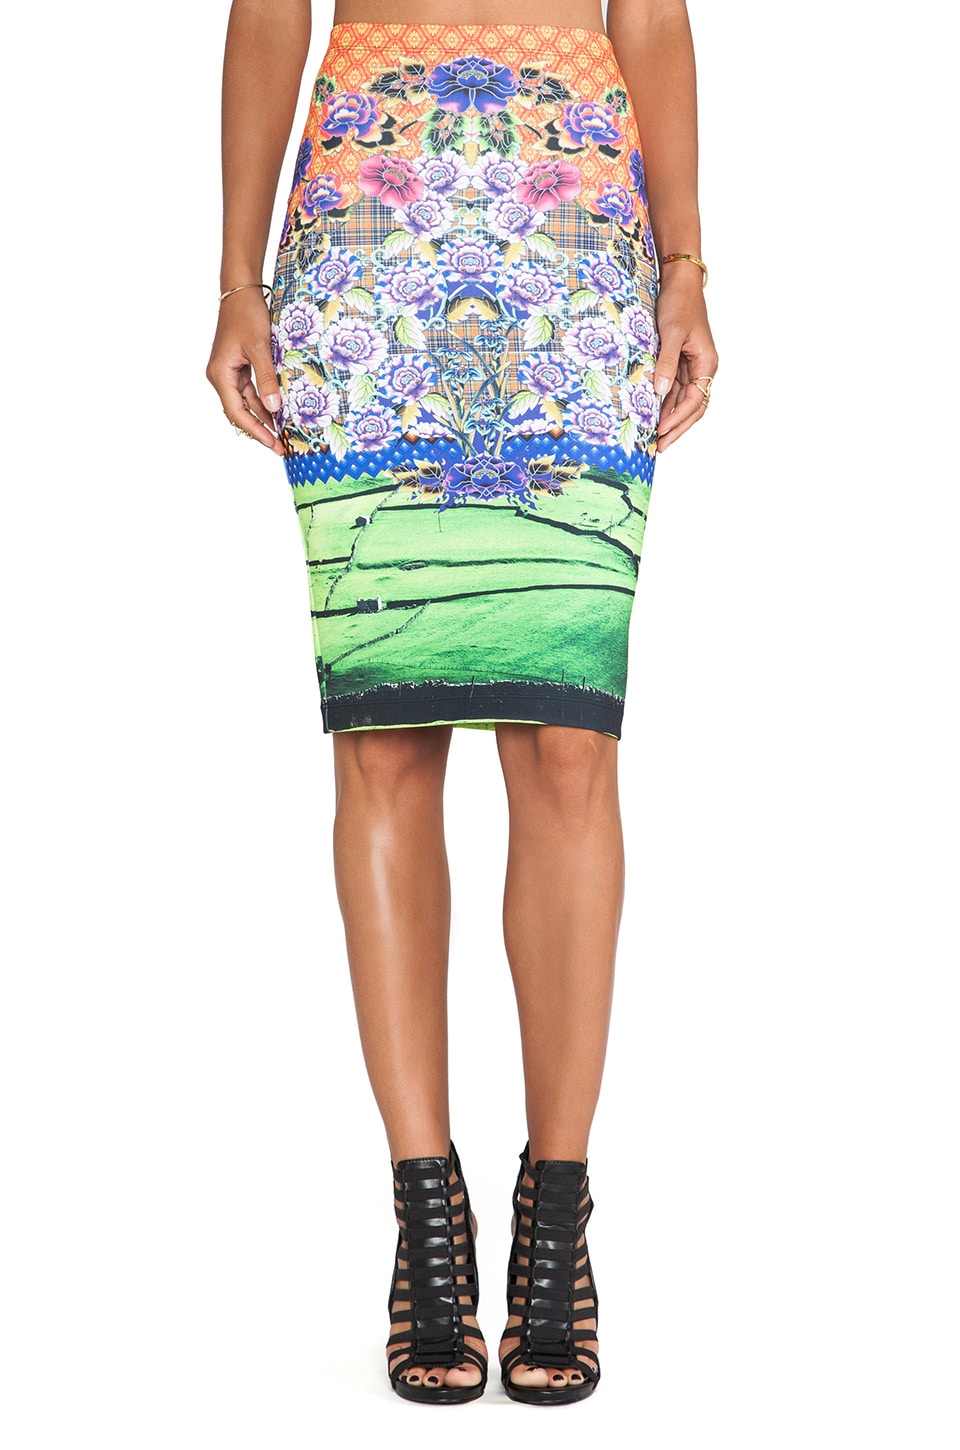 Clover Canyon Newgrange Clover Pastures Neoprene Skirt in Multi